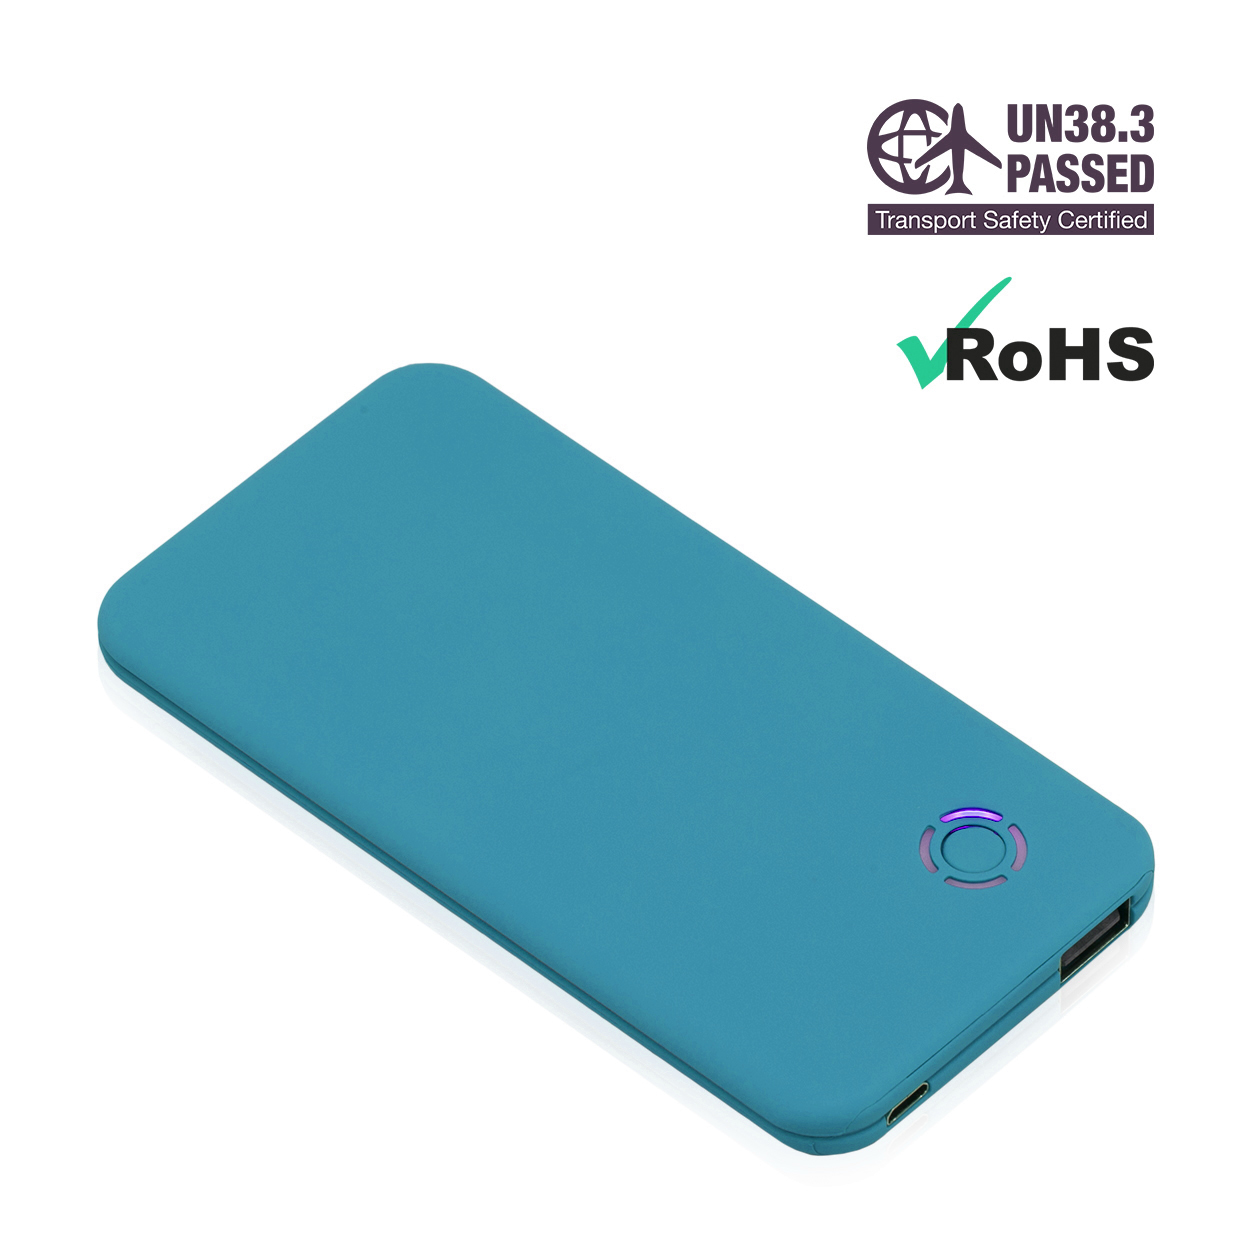 Turquoise Power Bank 4000mAh